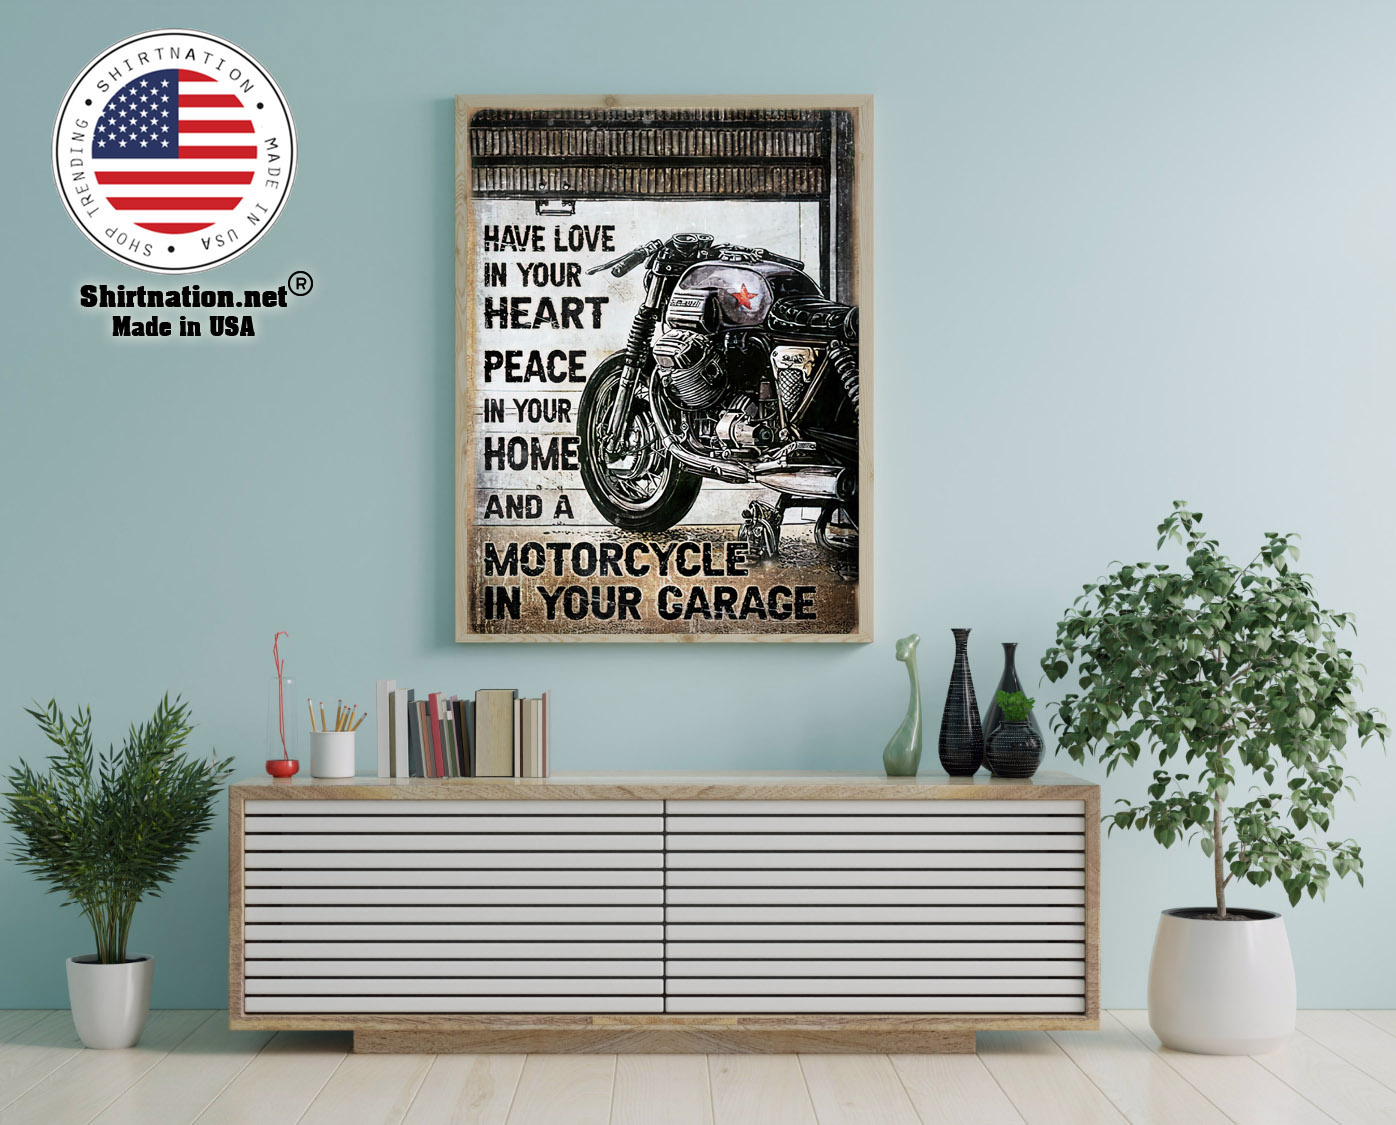 Have love in your heart peace in your home and a motorcycle in your garage poster 12